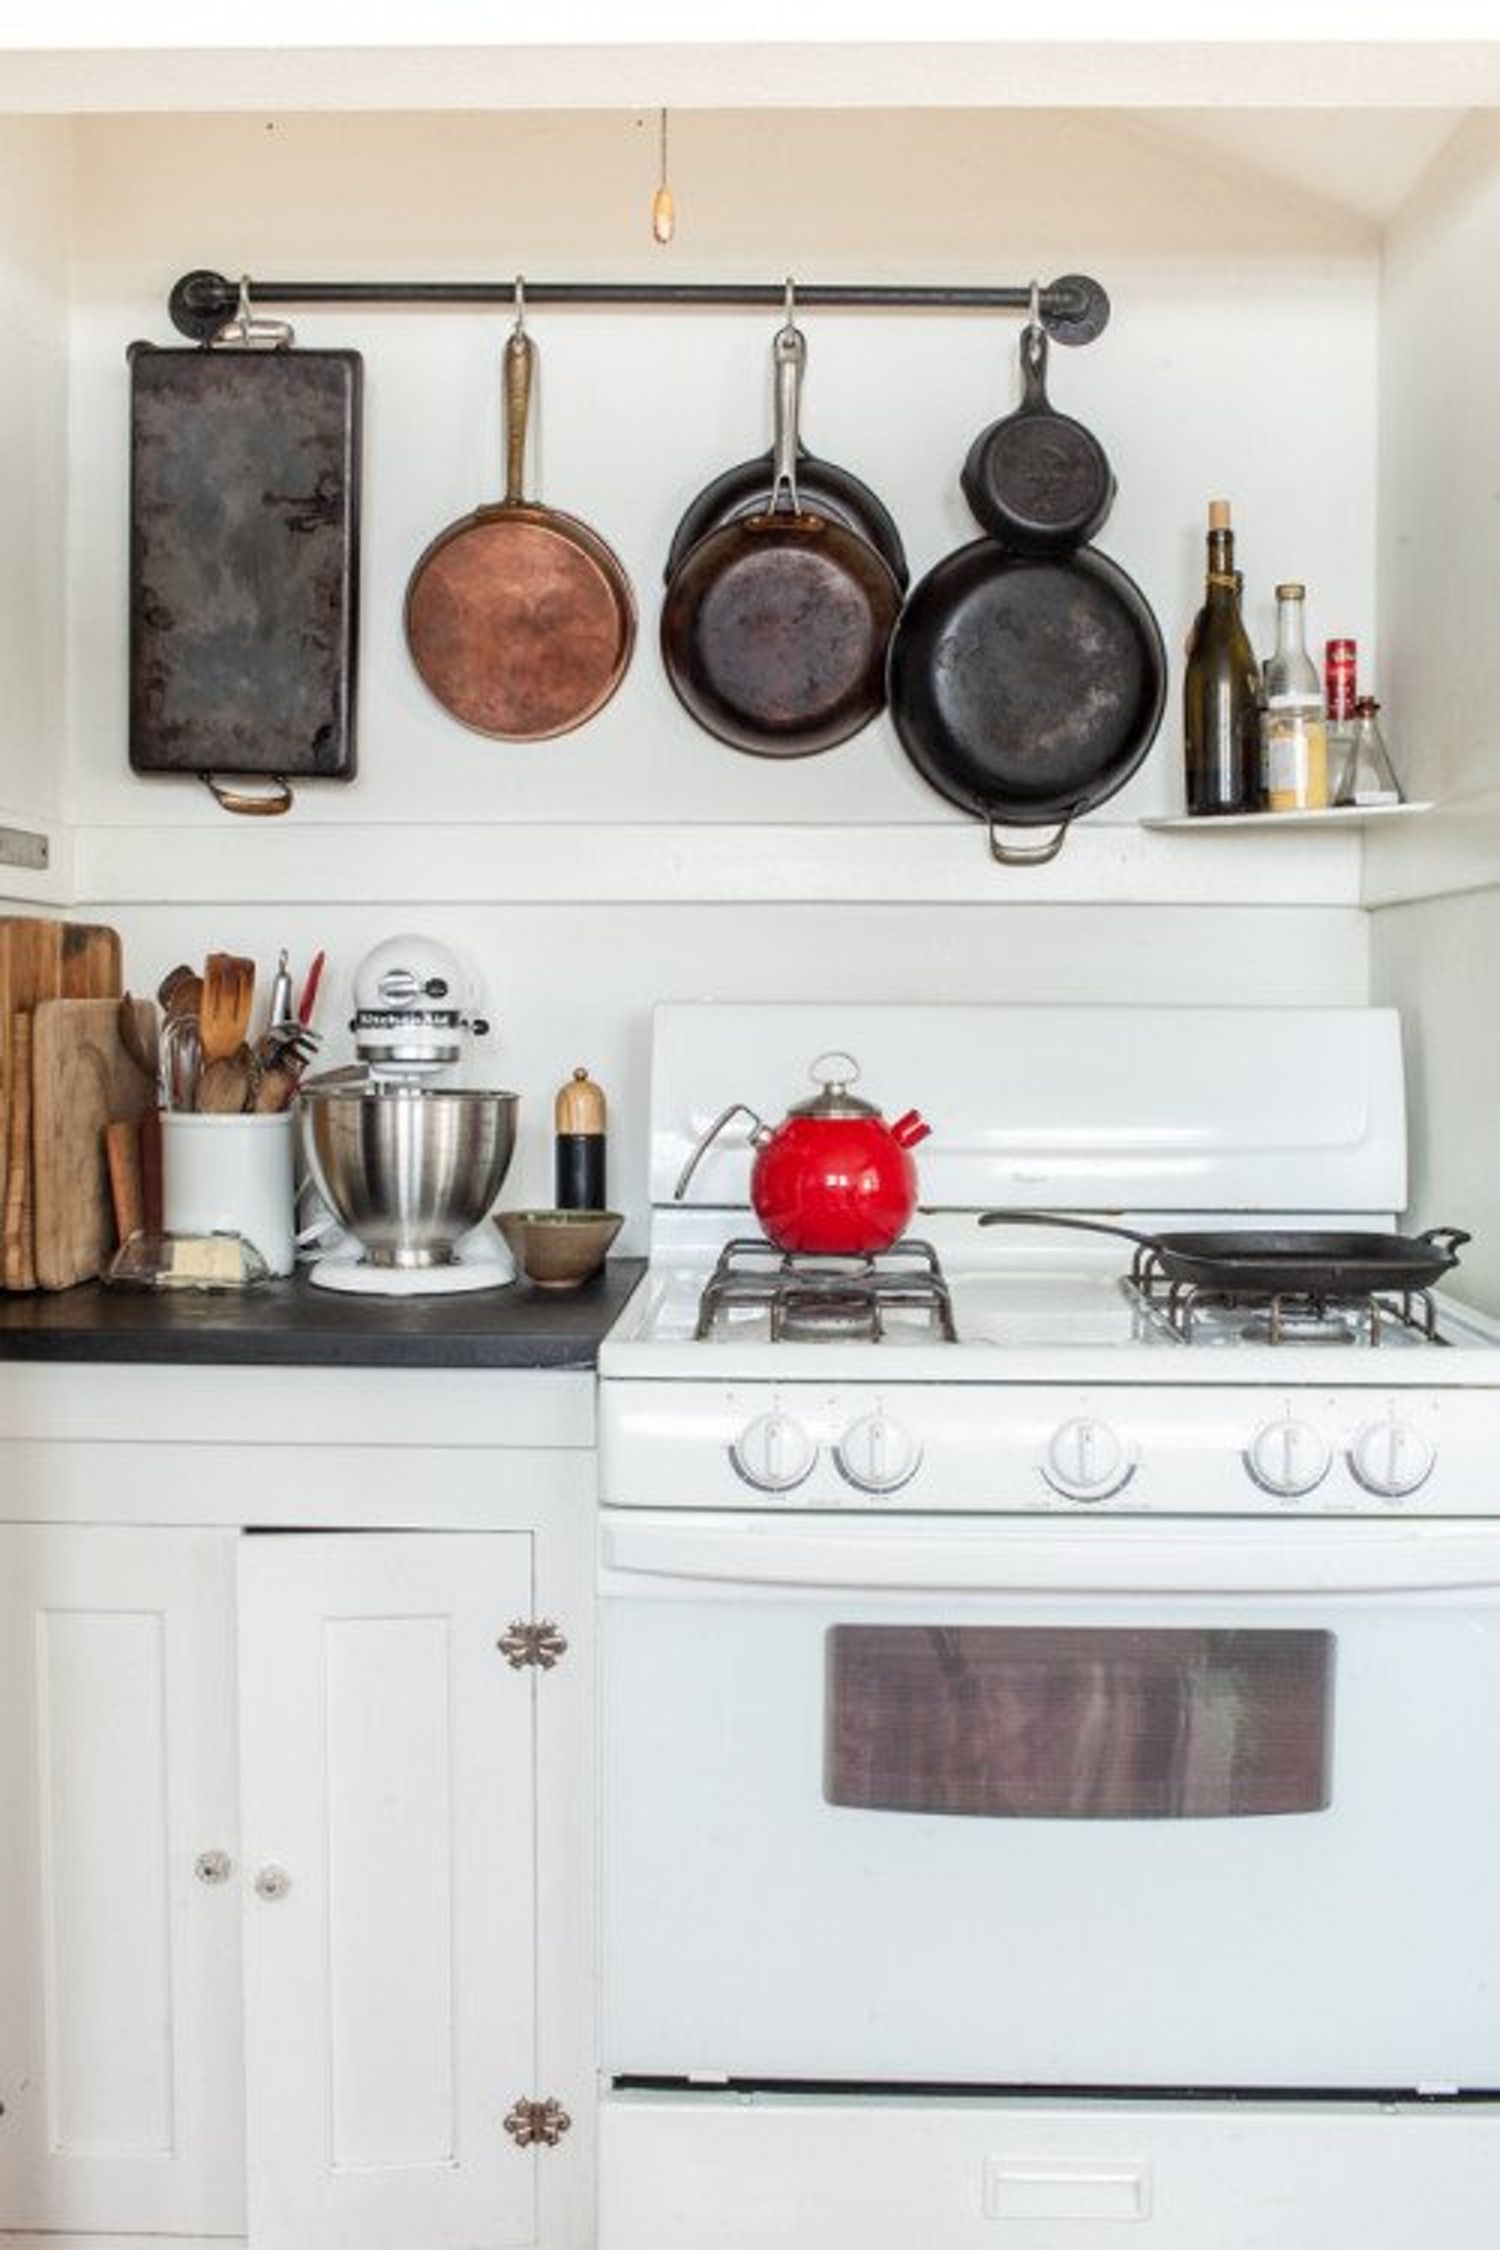 10 Kitchens With Cast Iron Pans on Display   Pinterest   Cast iron ...